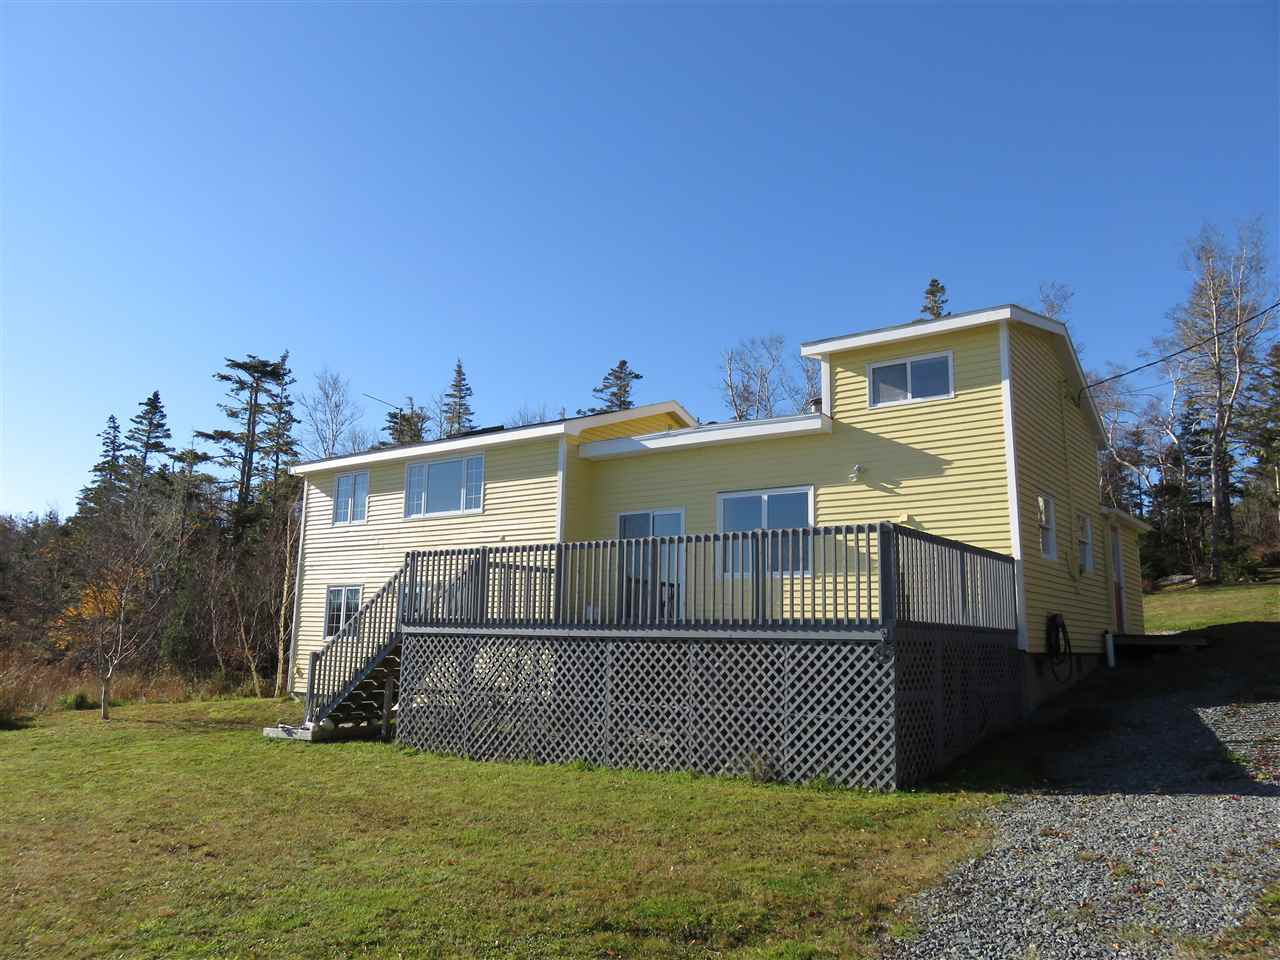 Photo 1: Photos: 783 WEST GREEN HARBOUR Road in West Green Harbour: 407-Shelburne County Residential for sale (South Shore)  : MLS® # 201701314